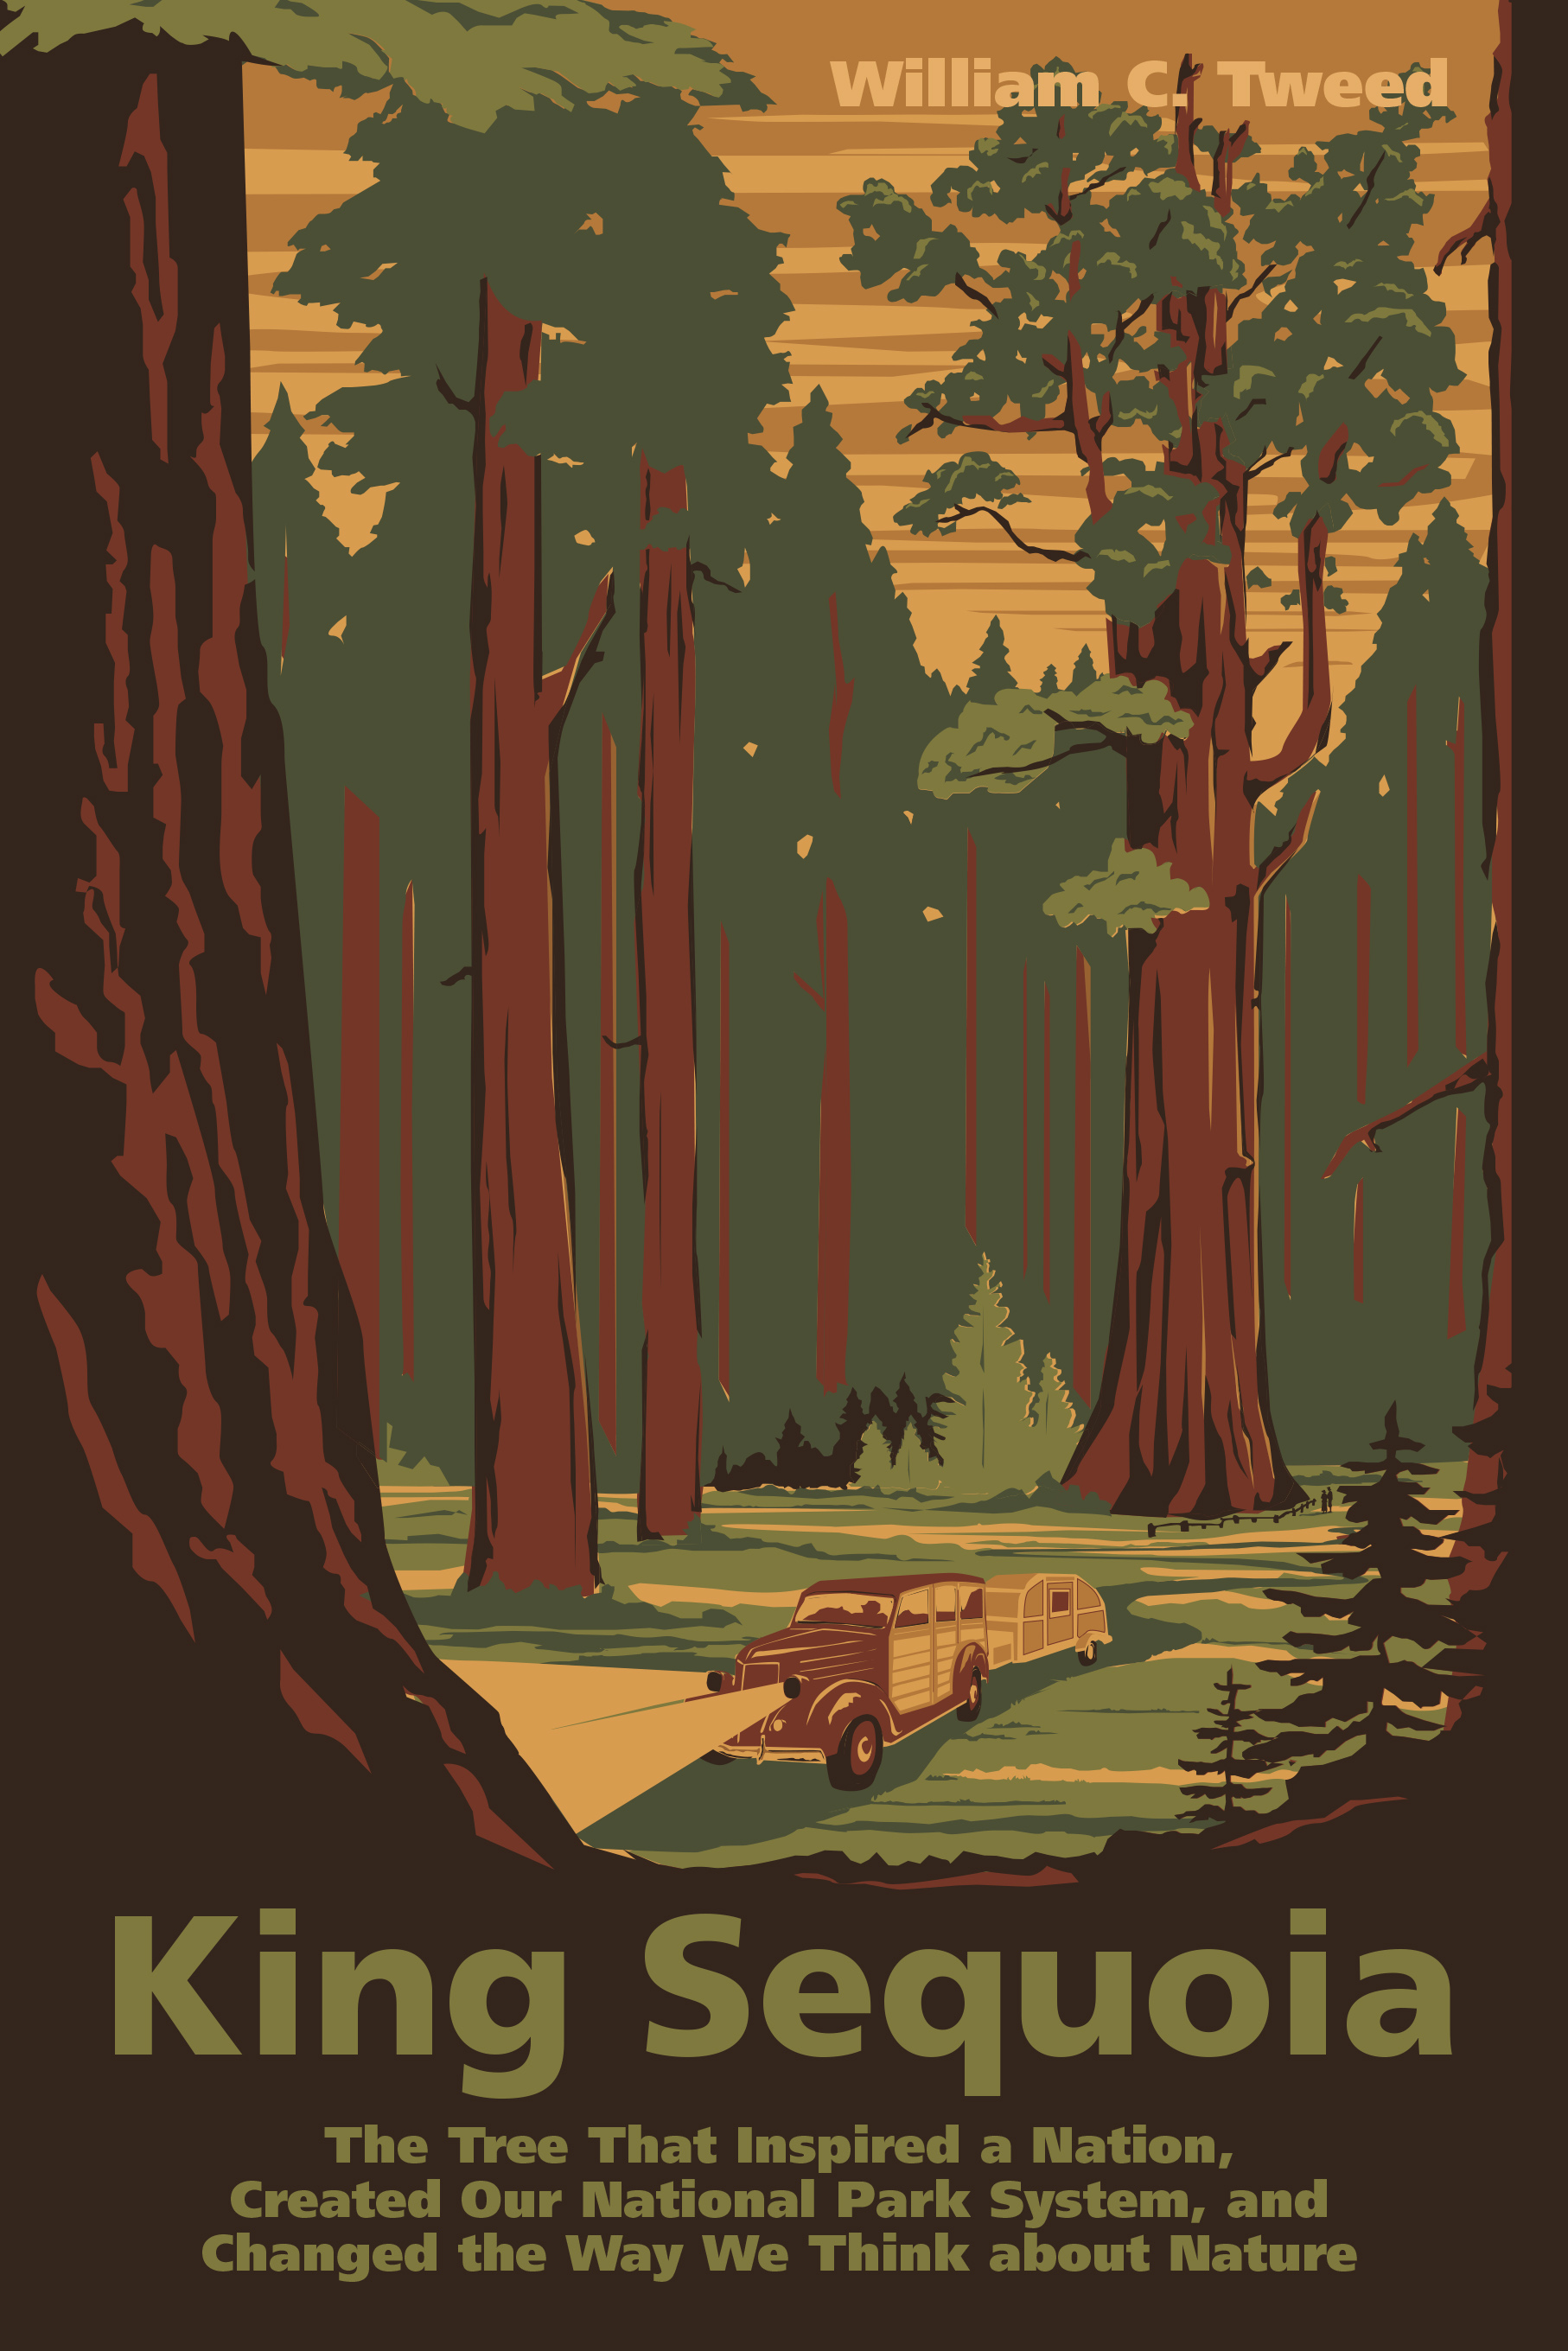 King Sequoia: The Tree That Inspired a Nation, Created Our National Park System, and Changed the Way We Think about Nature book cover